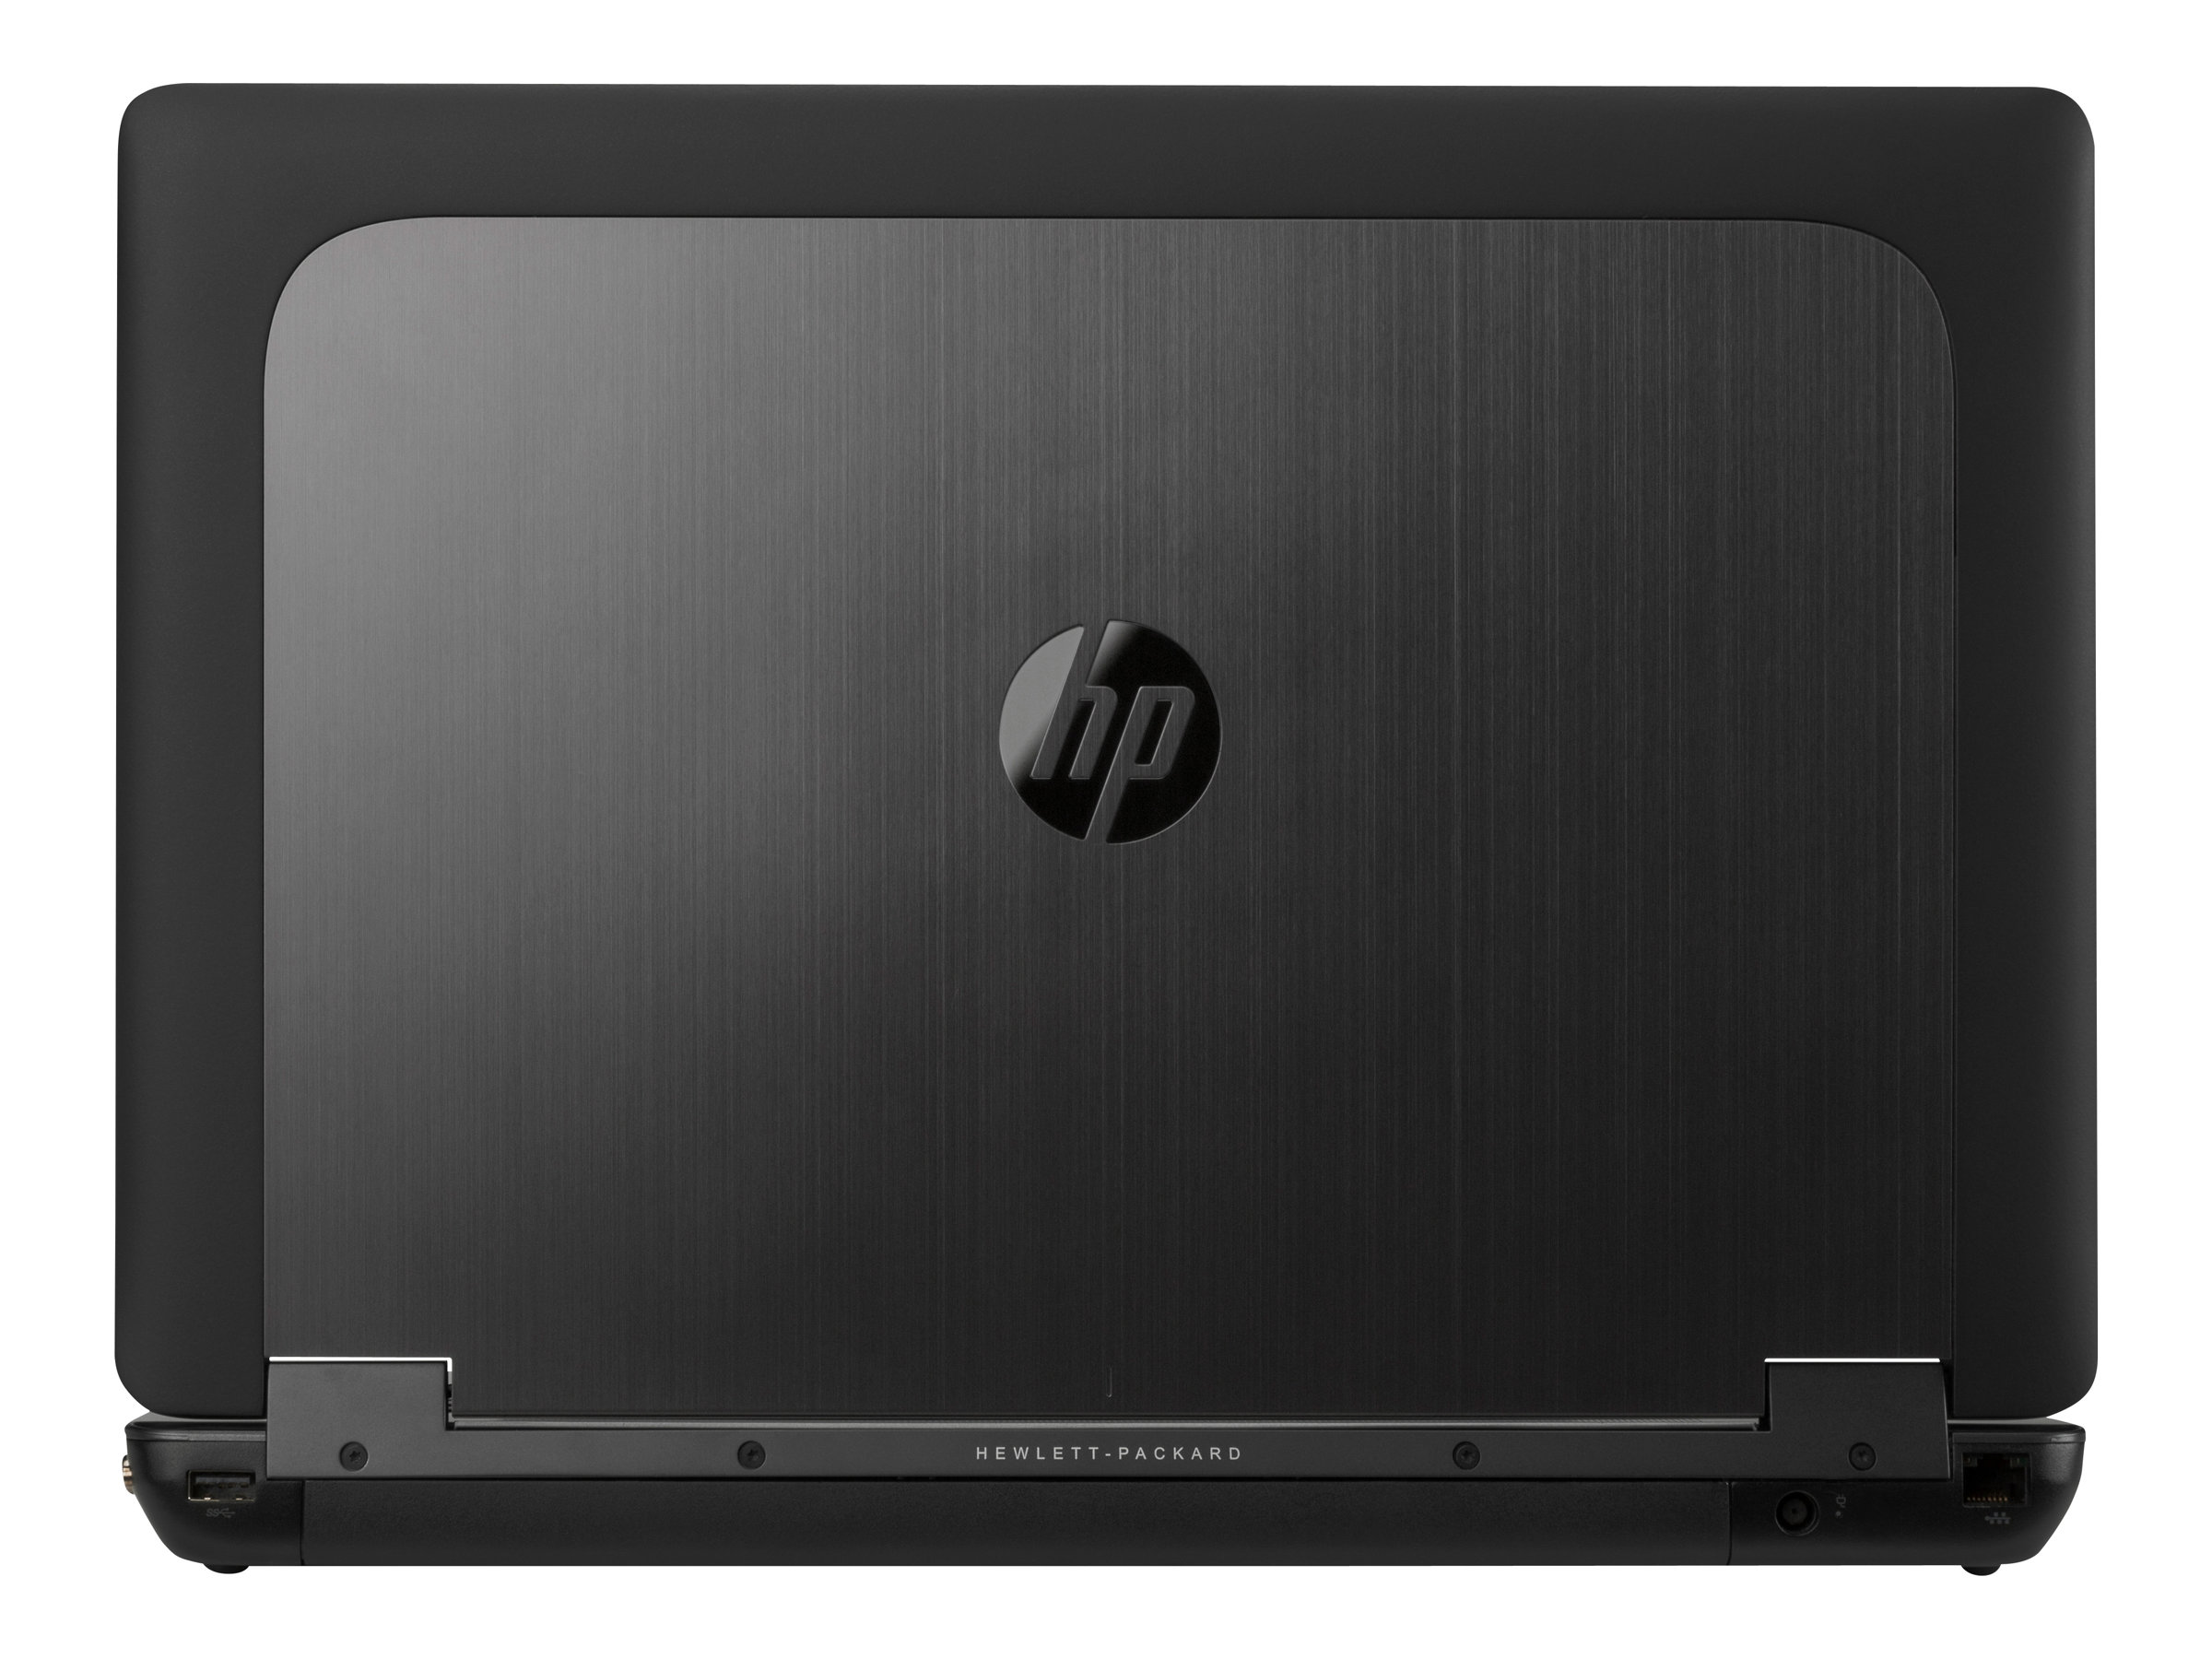 HP ZBook 15 Core i7-4910MQ 2.9GHz 8GB 512GB SSD DVD-RW BT 15.6 W7P64, M0V87US#ABA